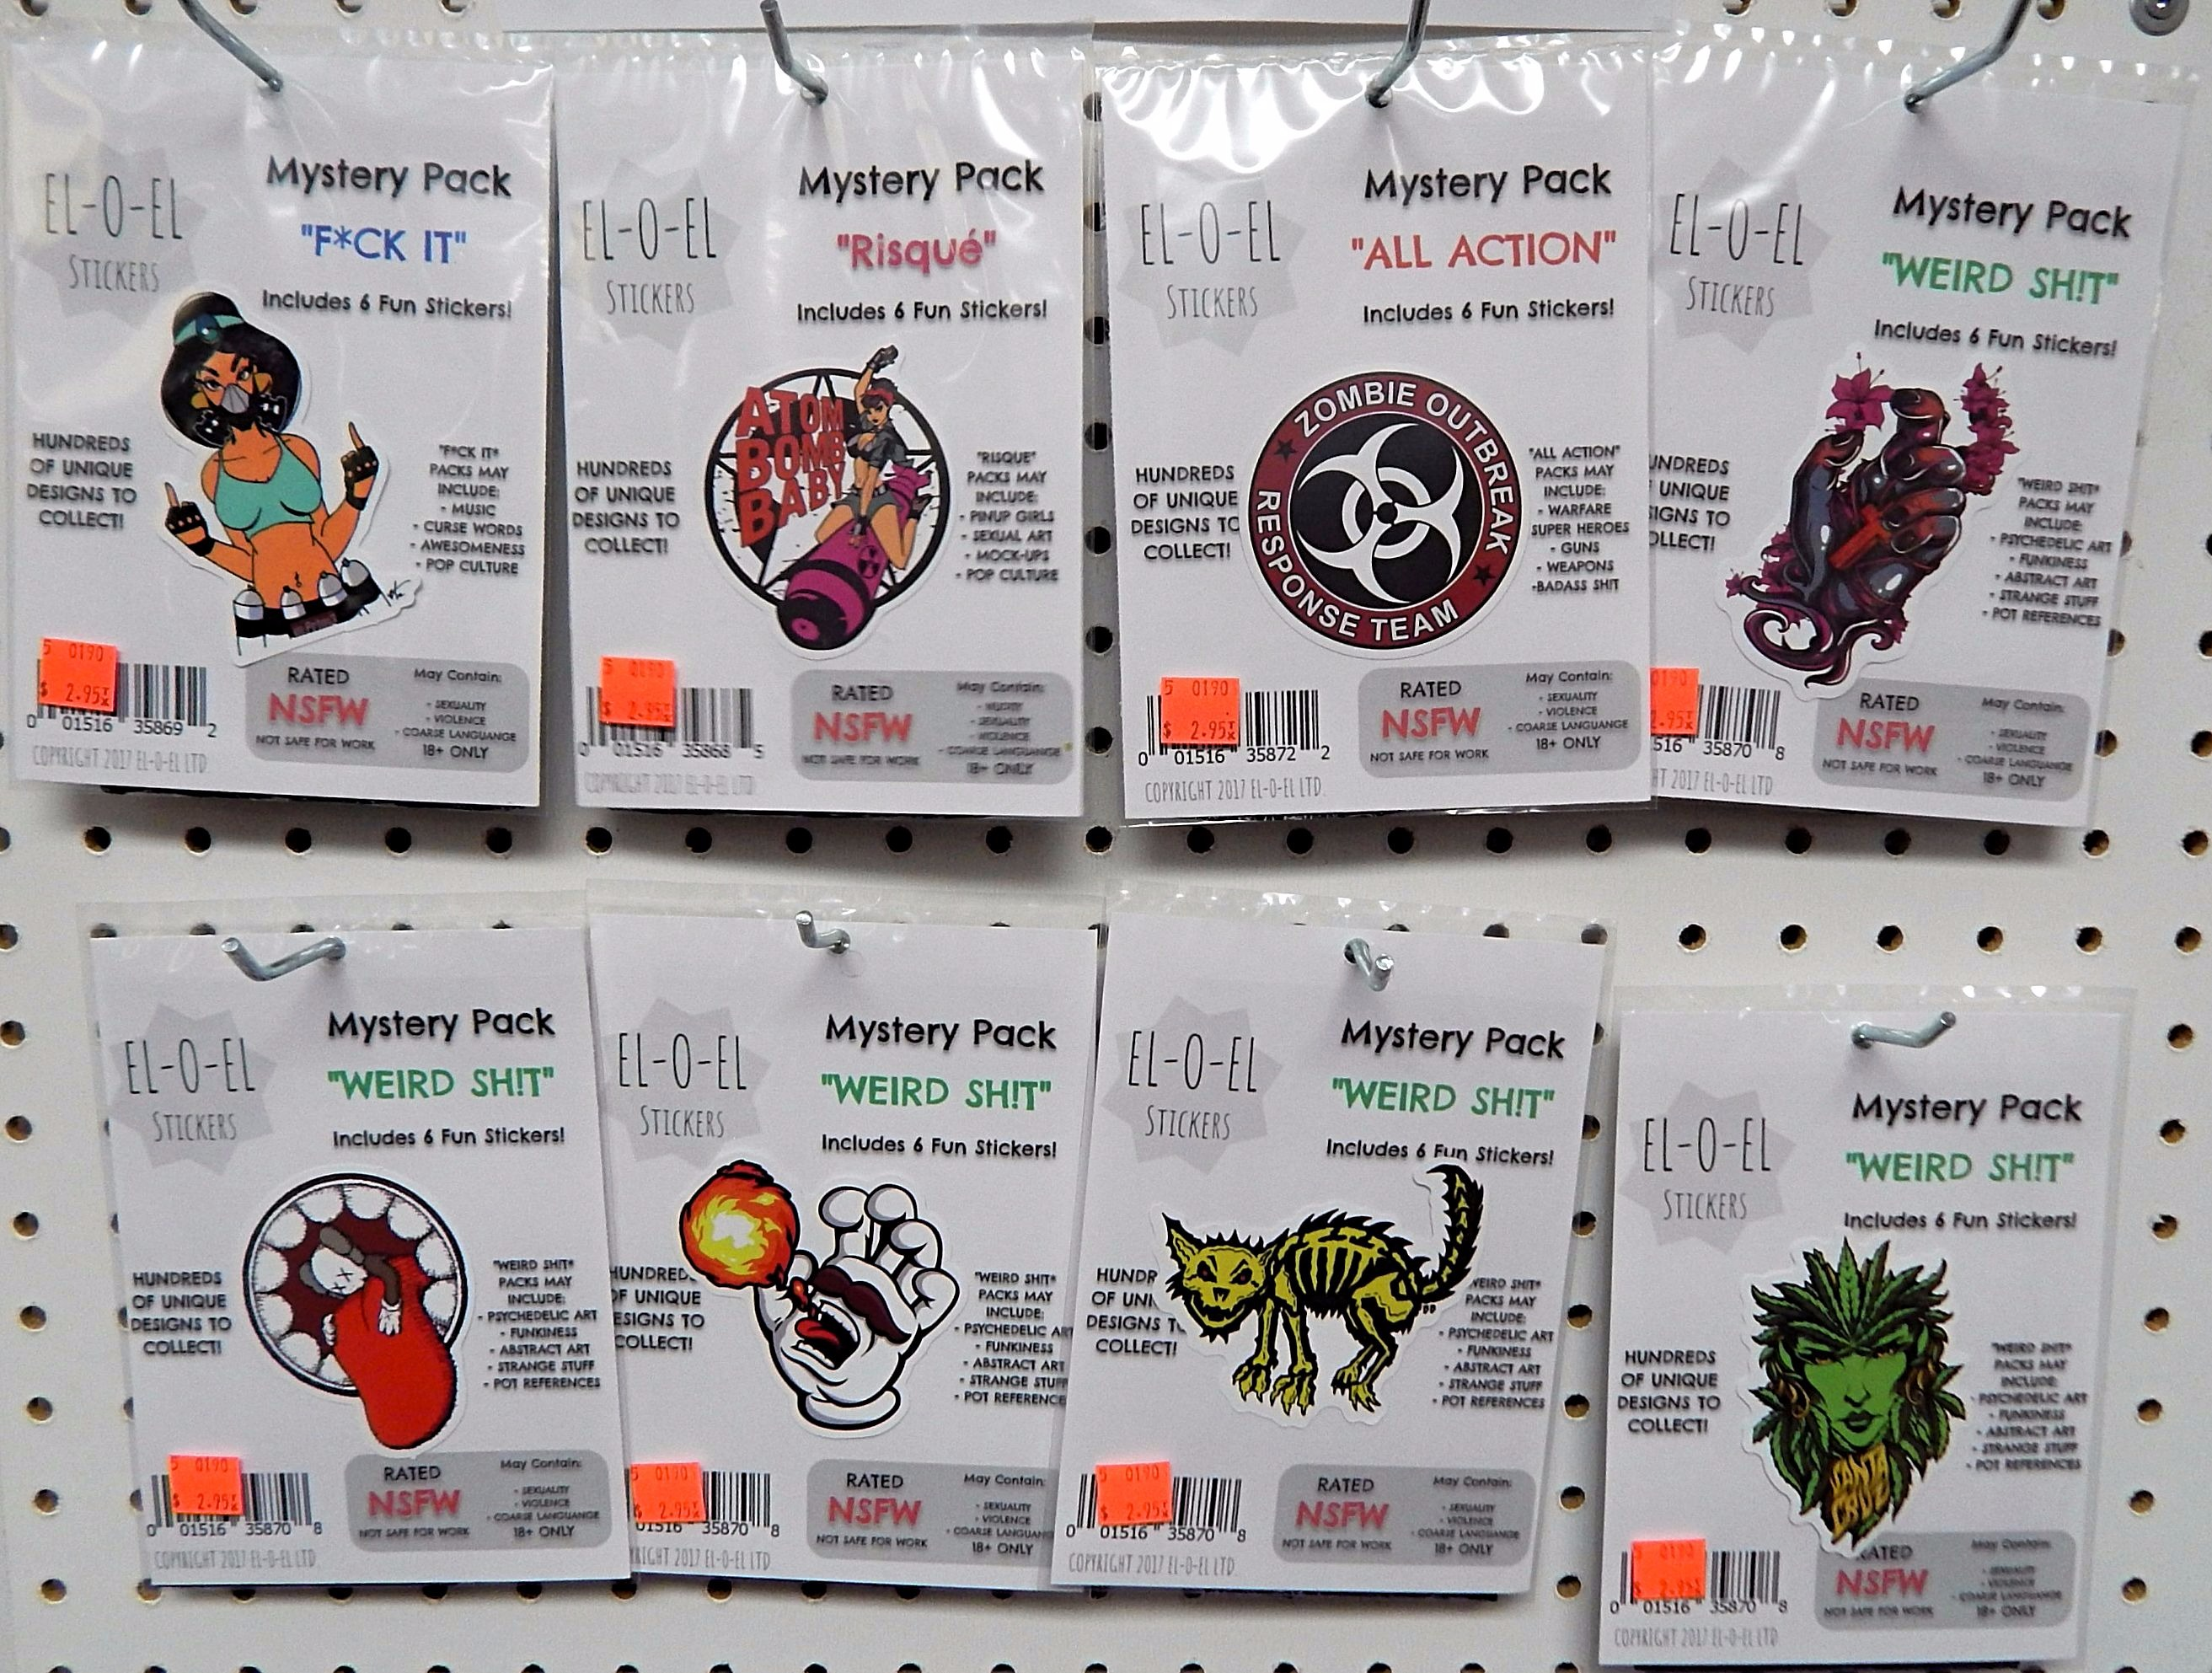 El-O-El Sticker Mystery Packs